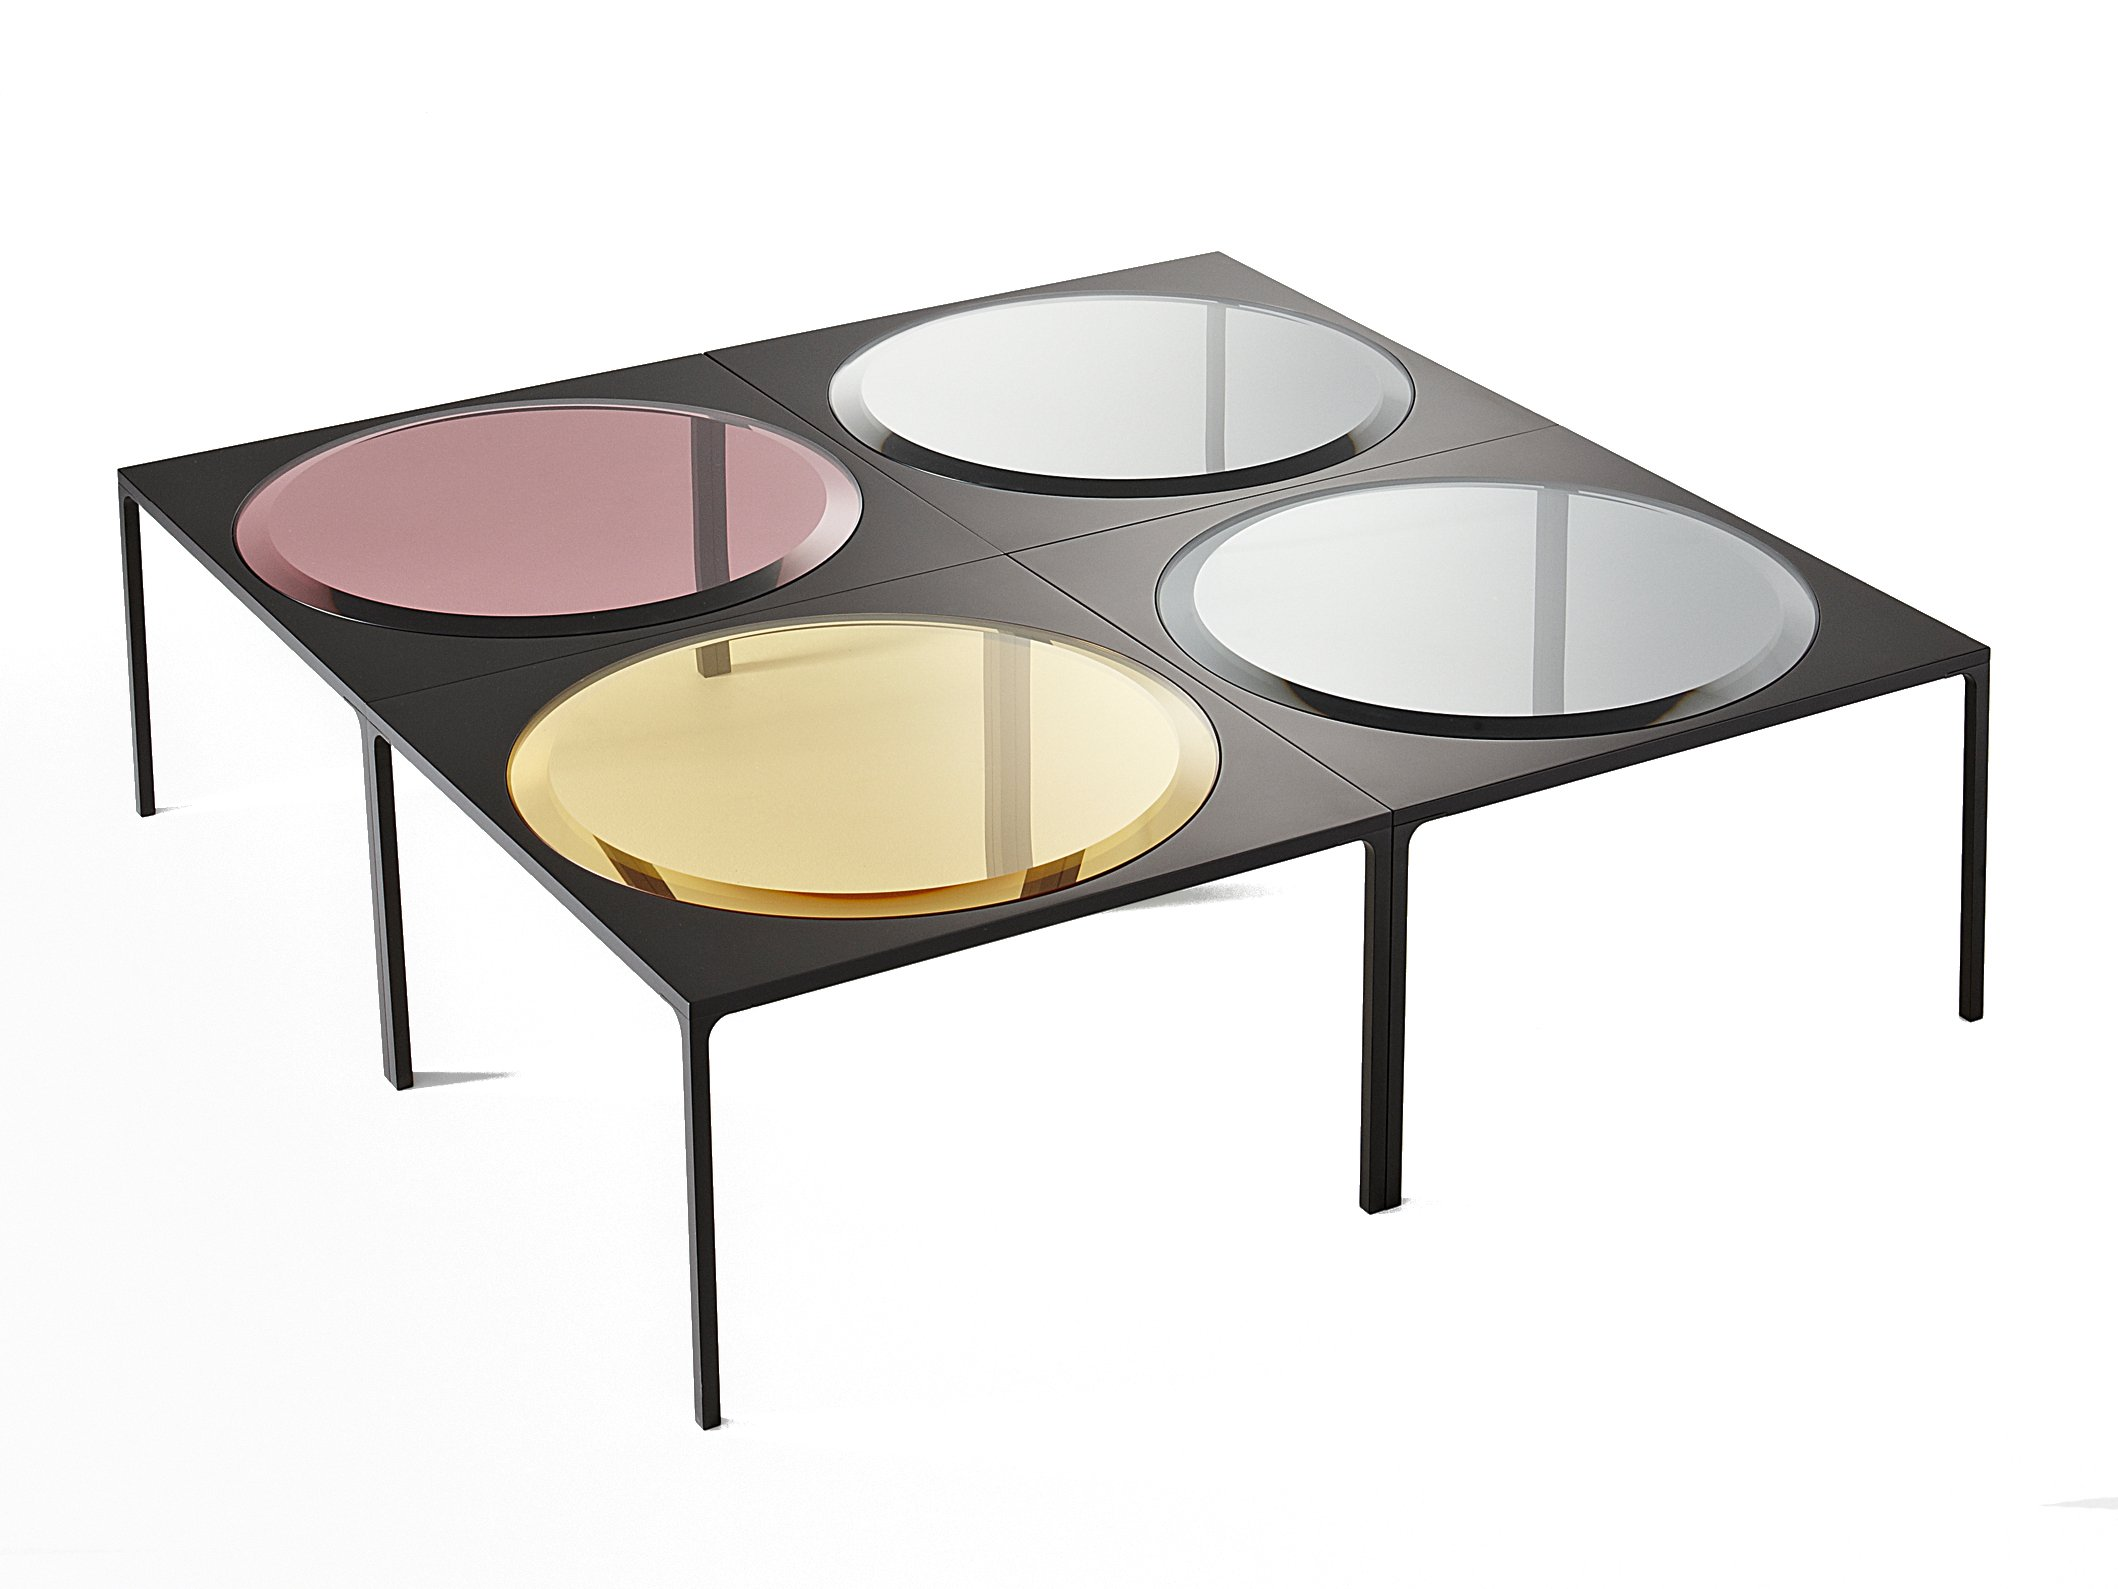 Low square coffee table rulli by gallotti radice design luca nichetto Low coffee table square